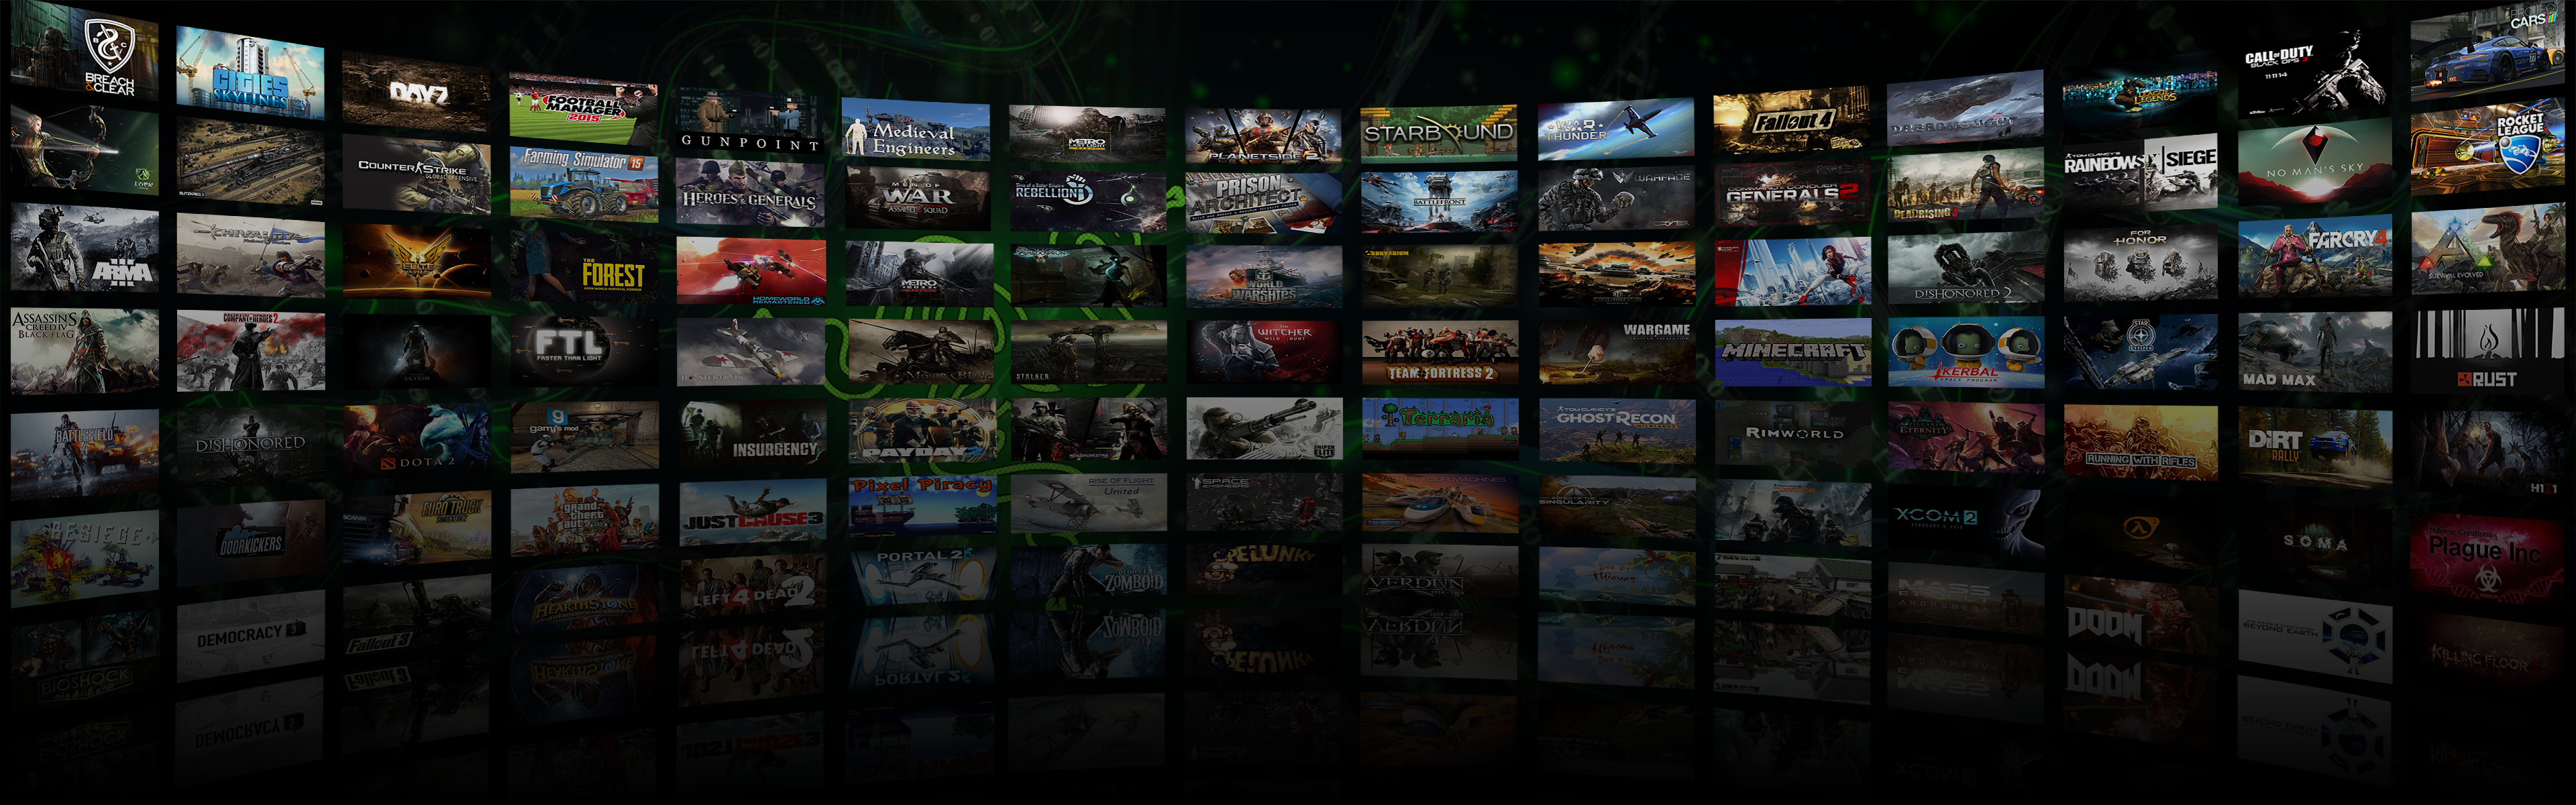 3840x1200 ... Dual Monitor Game Montage Wallpaper 3 by DarkXess